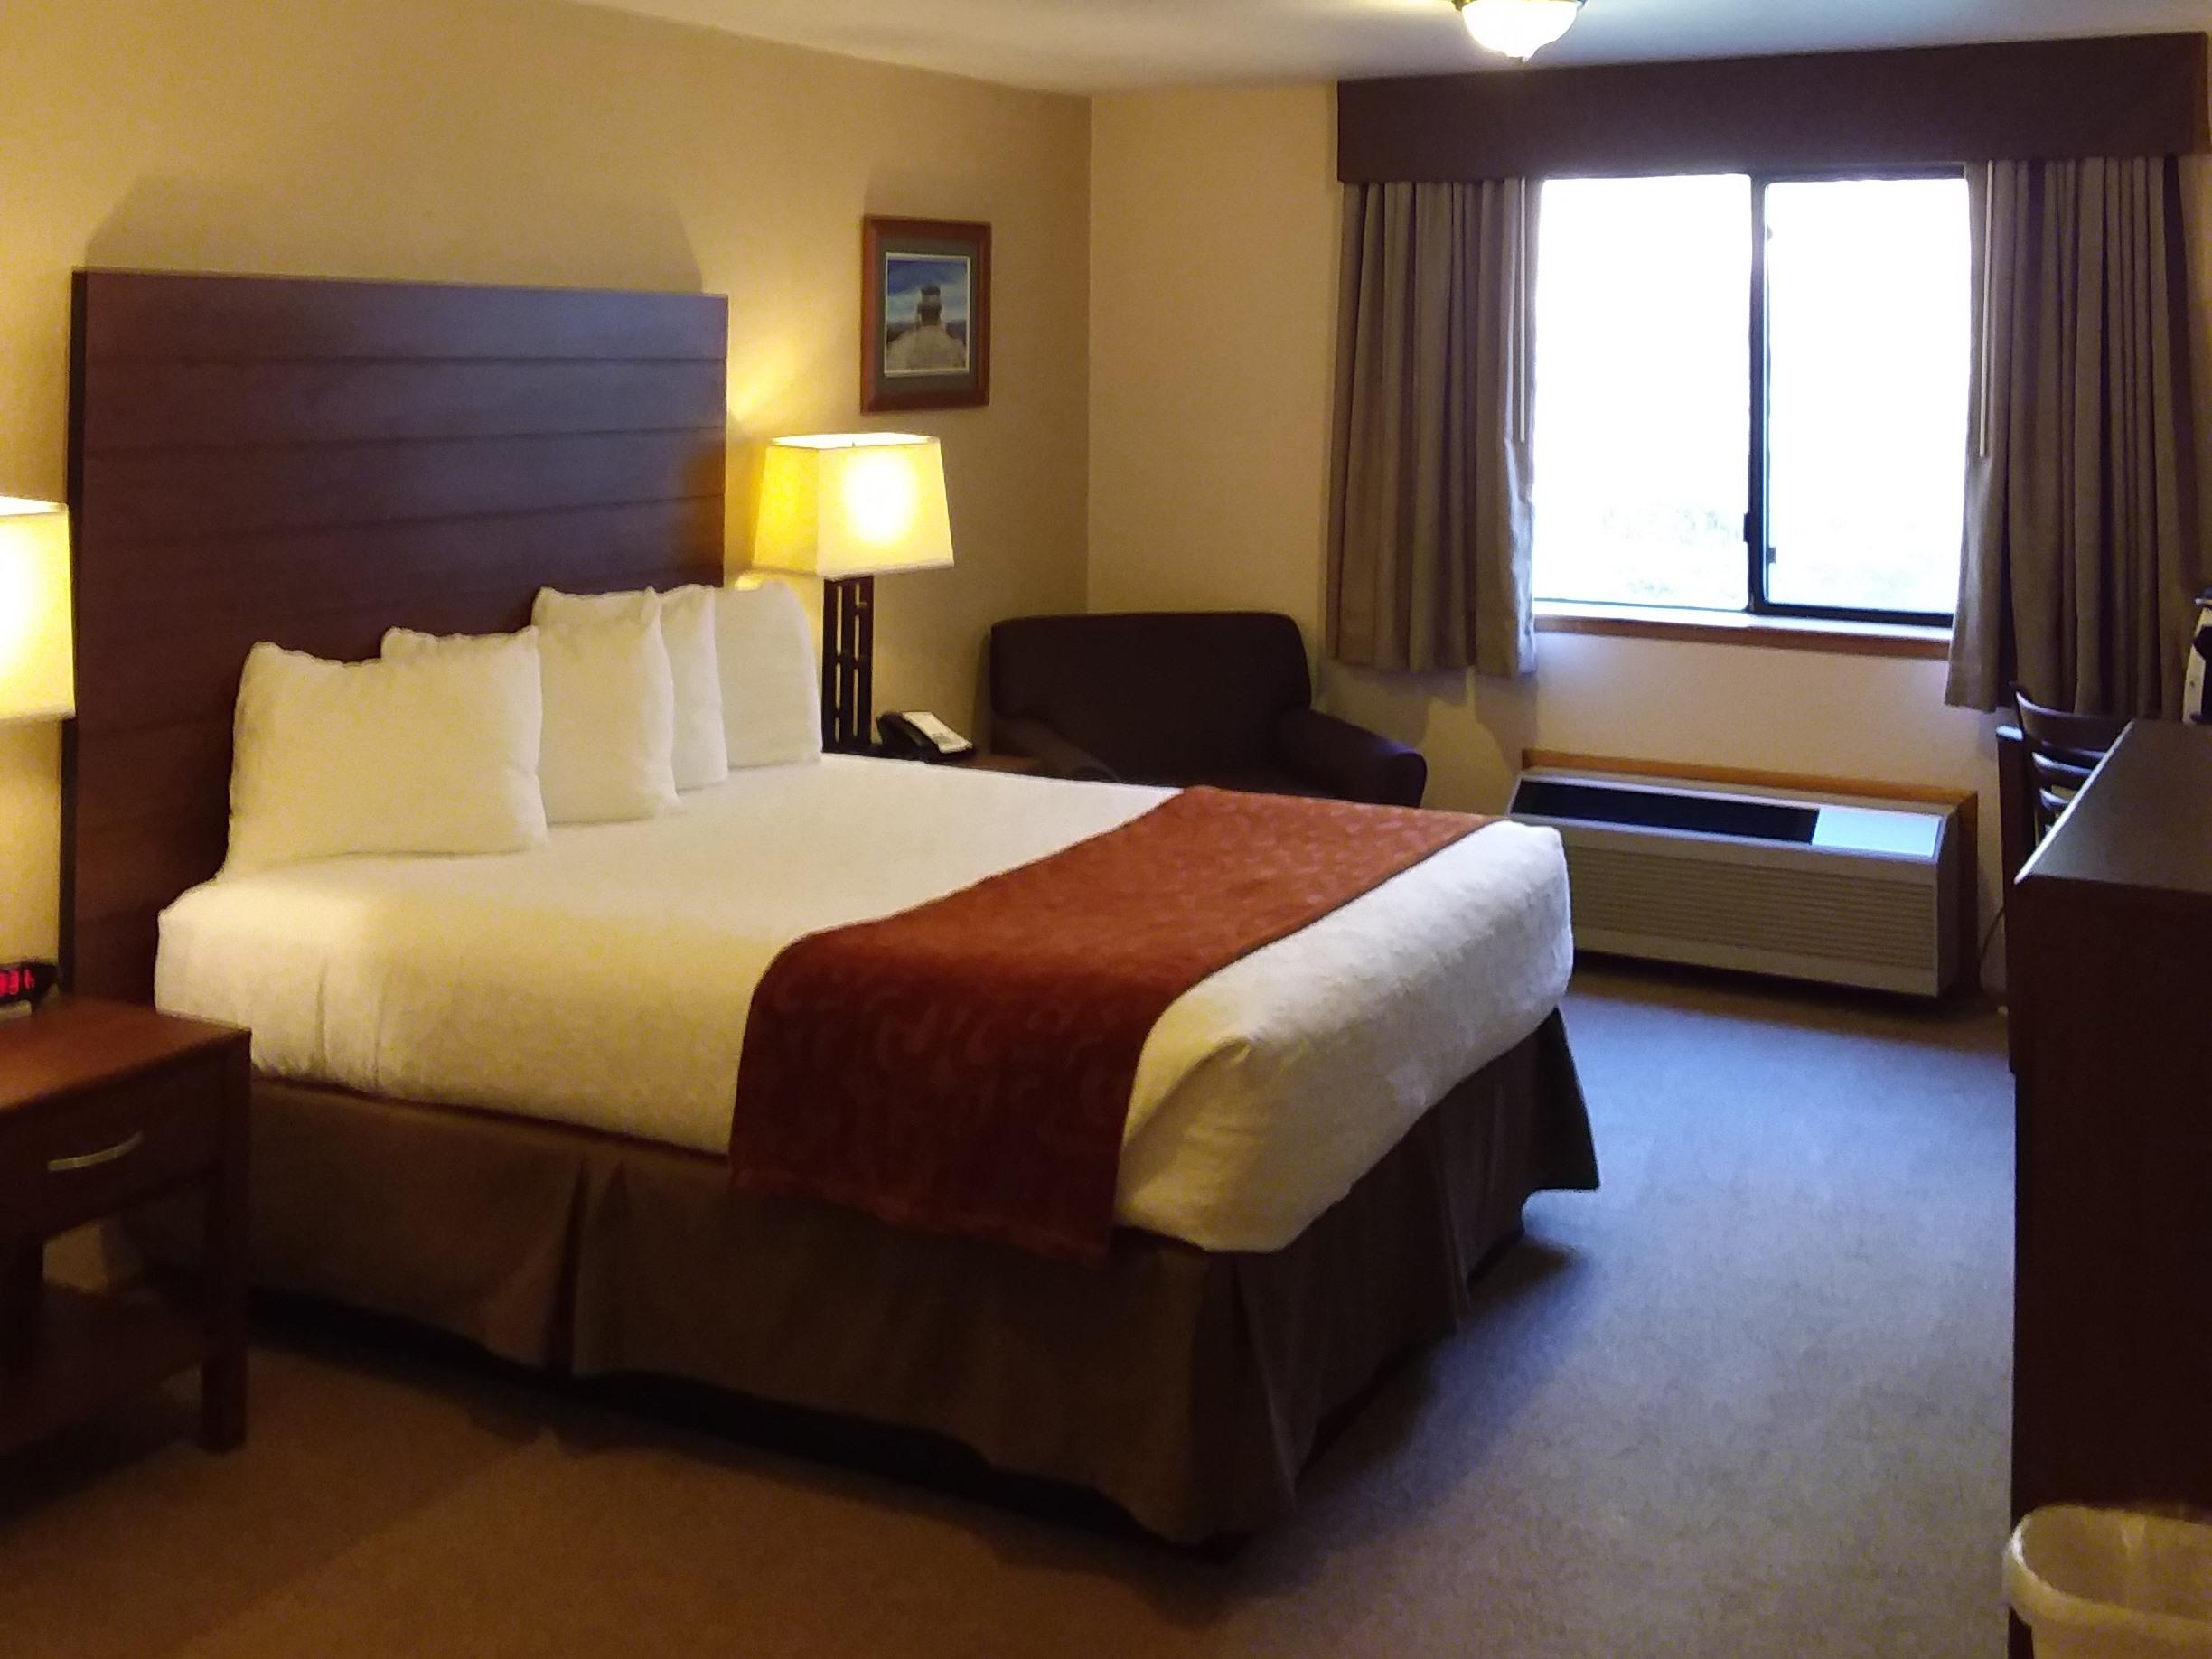 Double room-Ensuite-Standard-Rooms with 1 Queen bed